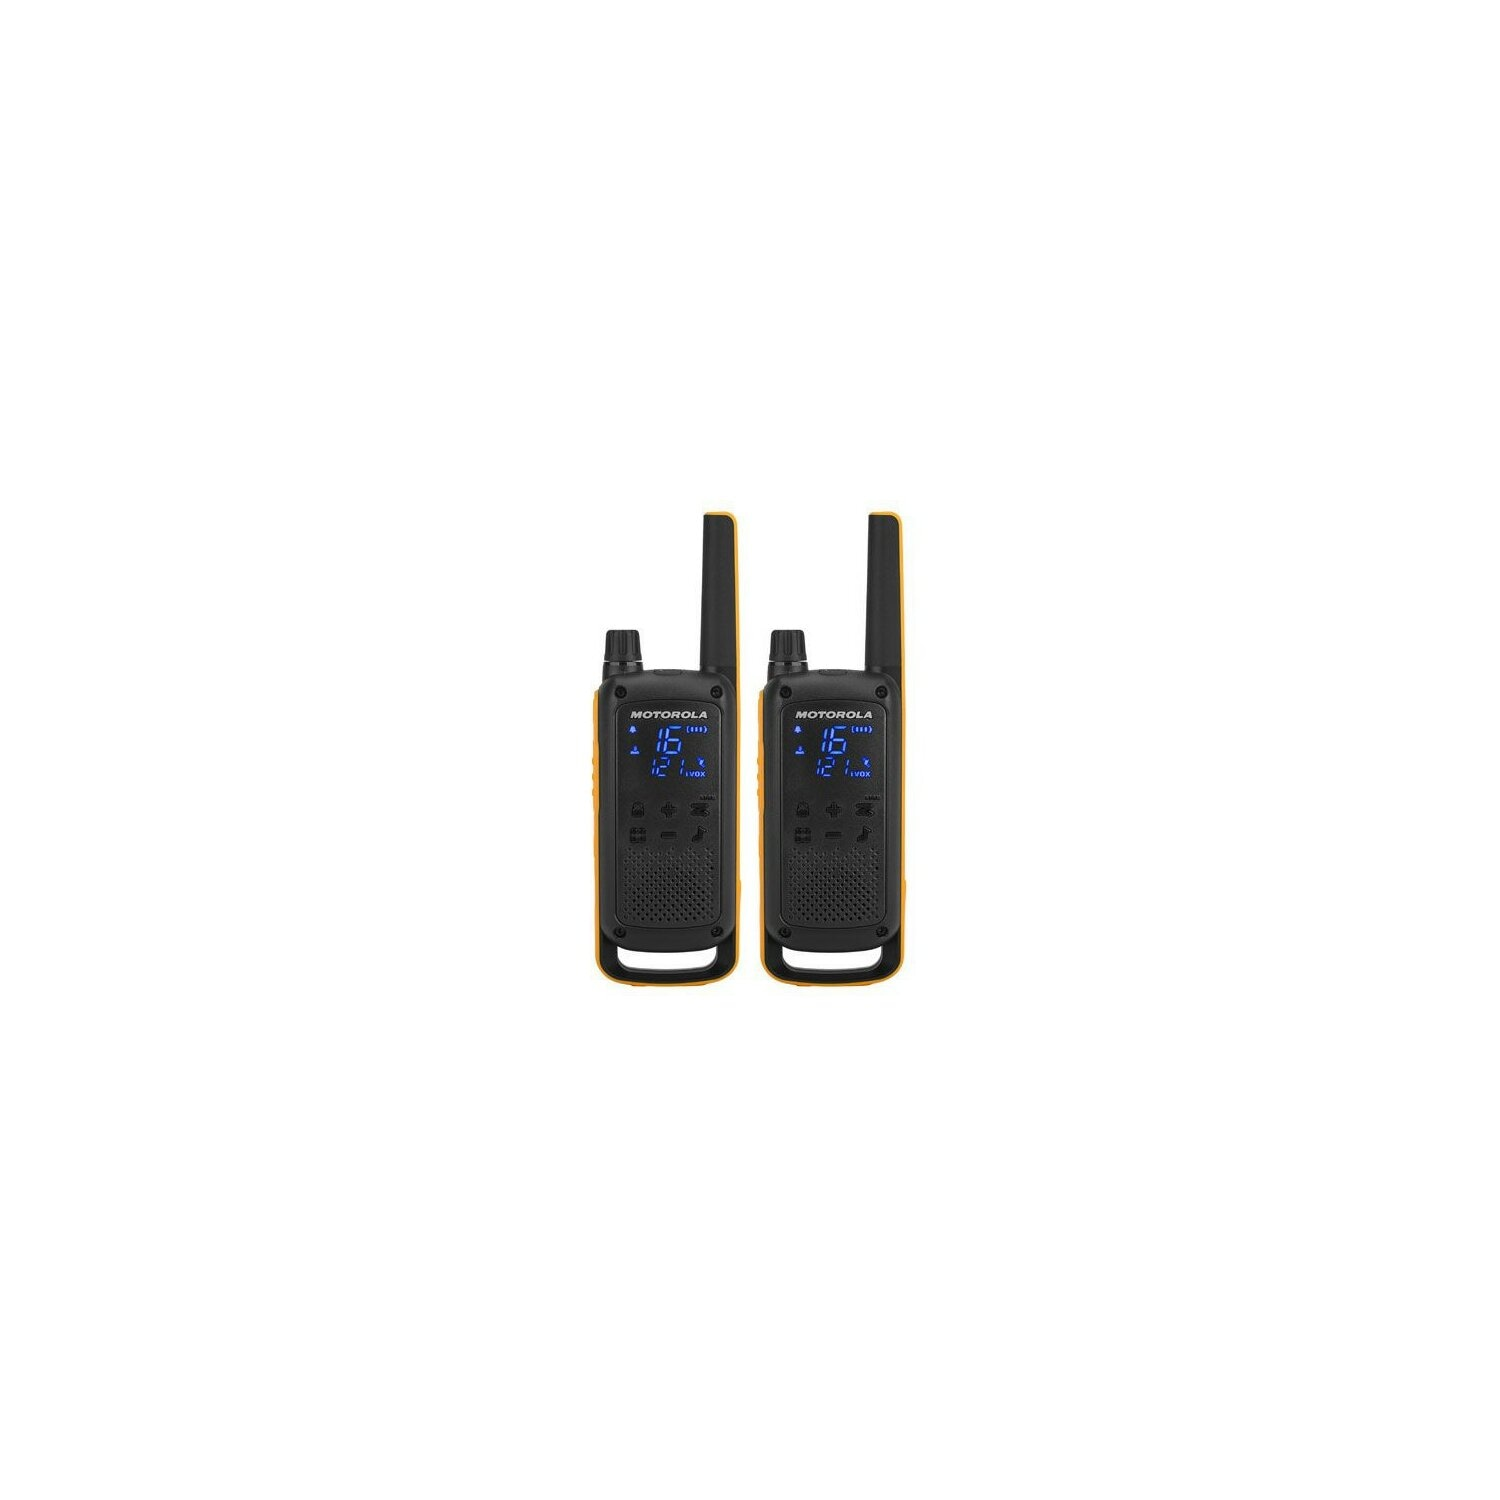 Radiotelefony MOTOROLA Talkabout T82 Extreme Twin Pack